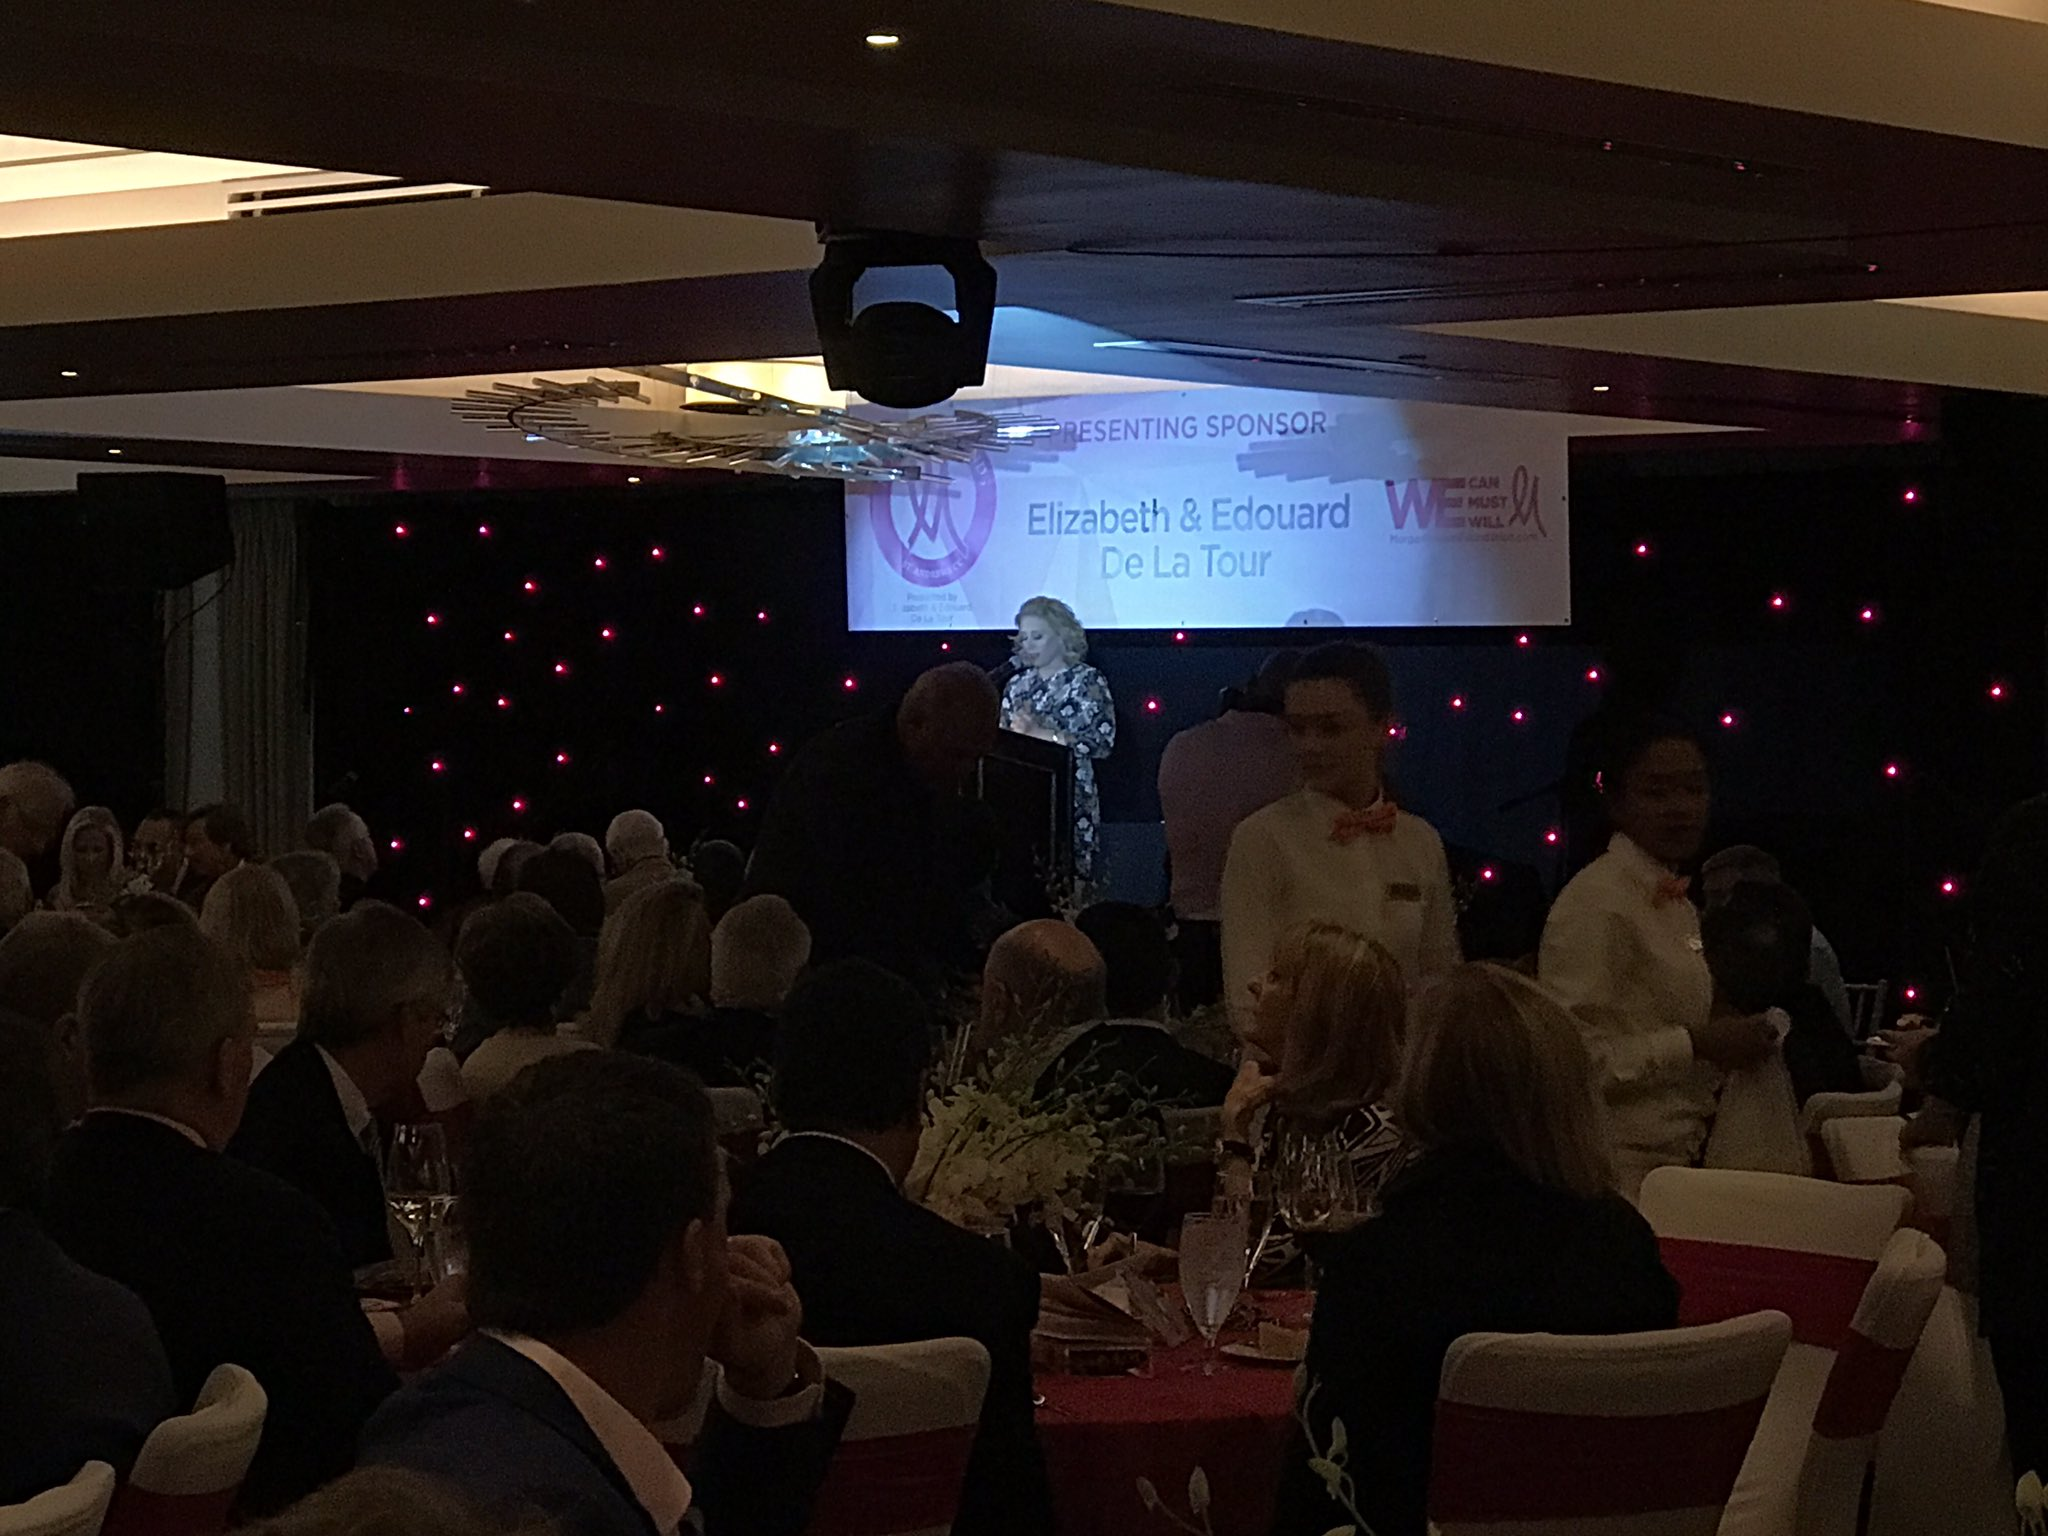 Welcome to the 10th annual Morgan and Friends! @mpressel has raised over $5.5 million! #MorganandFriends17 https://t.co/PhnFW3BxZA